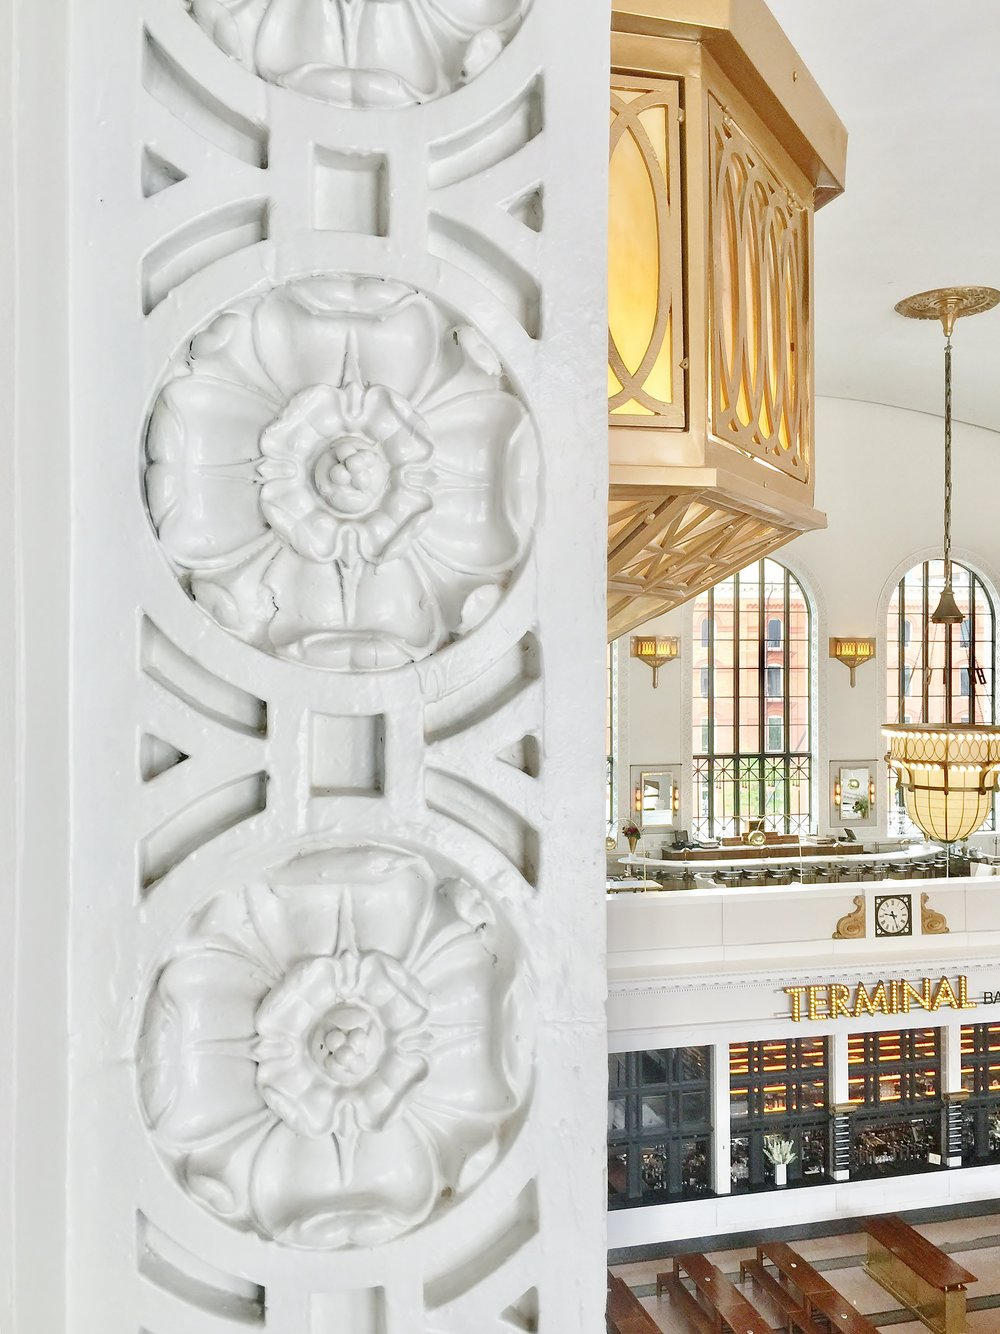 Arch moulding details | The Crawford Hotel